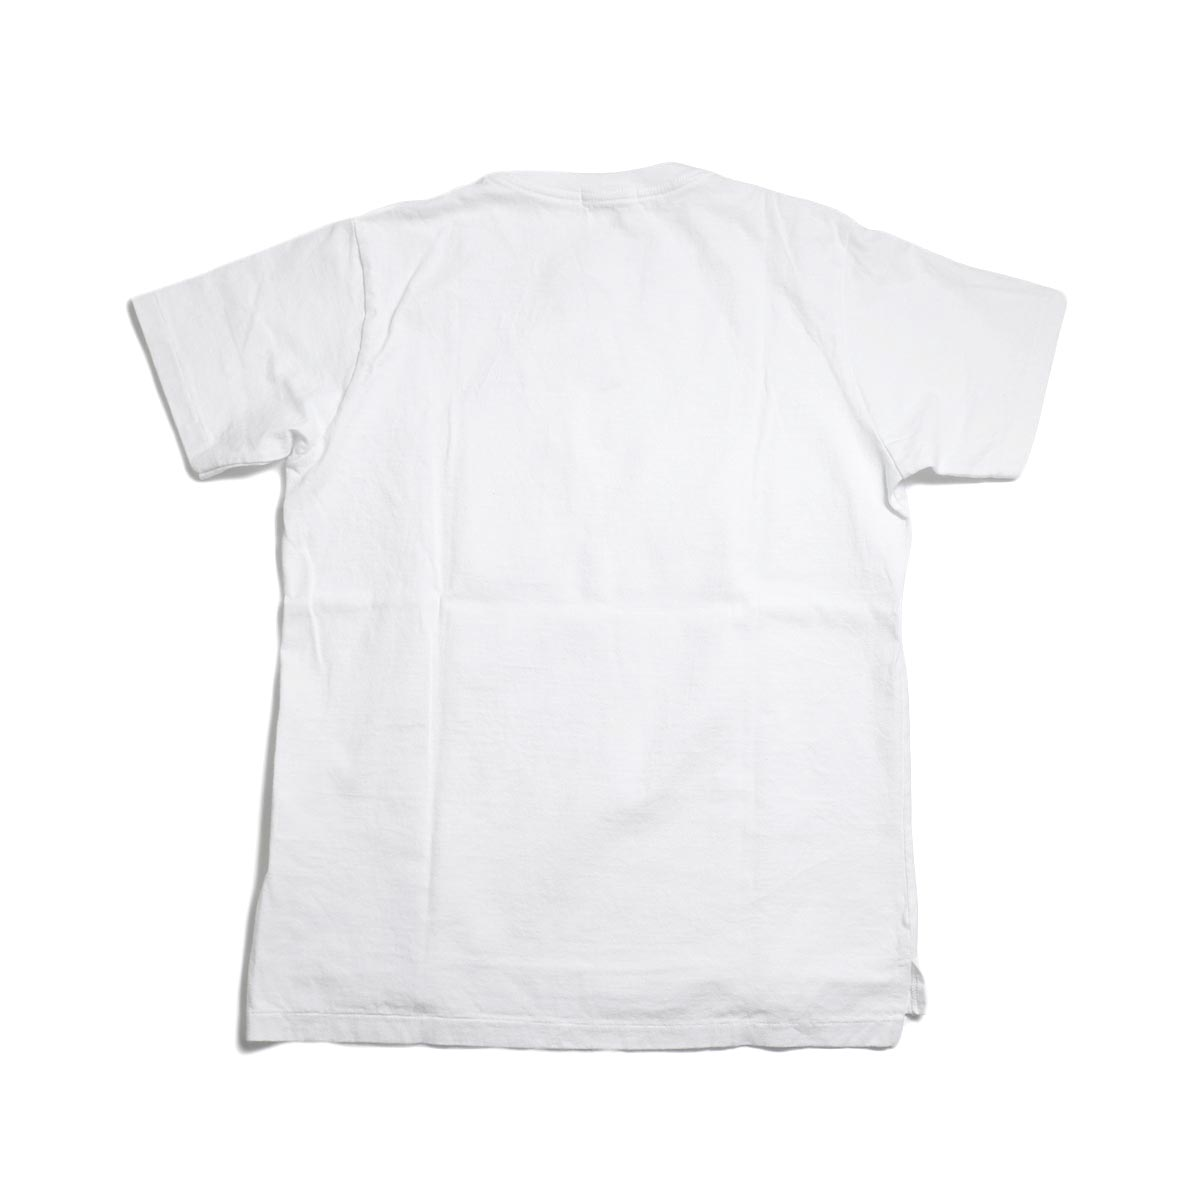 ENGINEERED GARMENTS Workaday / Crossover Neck Pocket Tee -White 背面